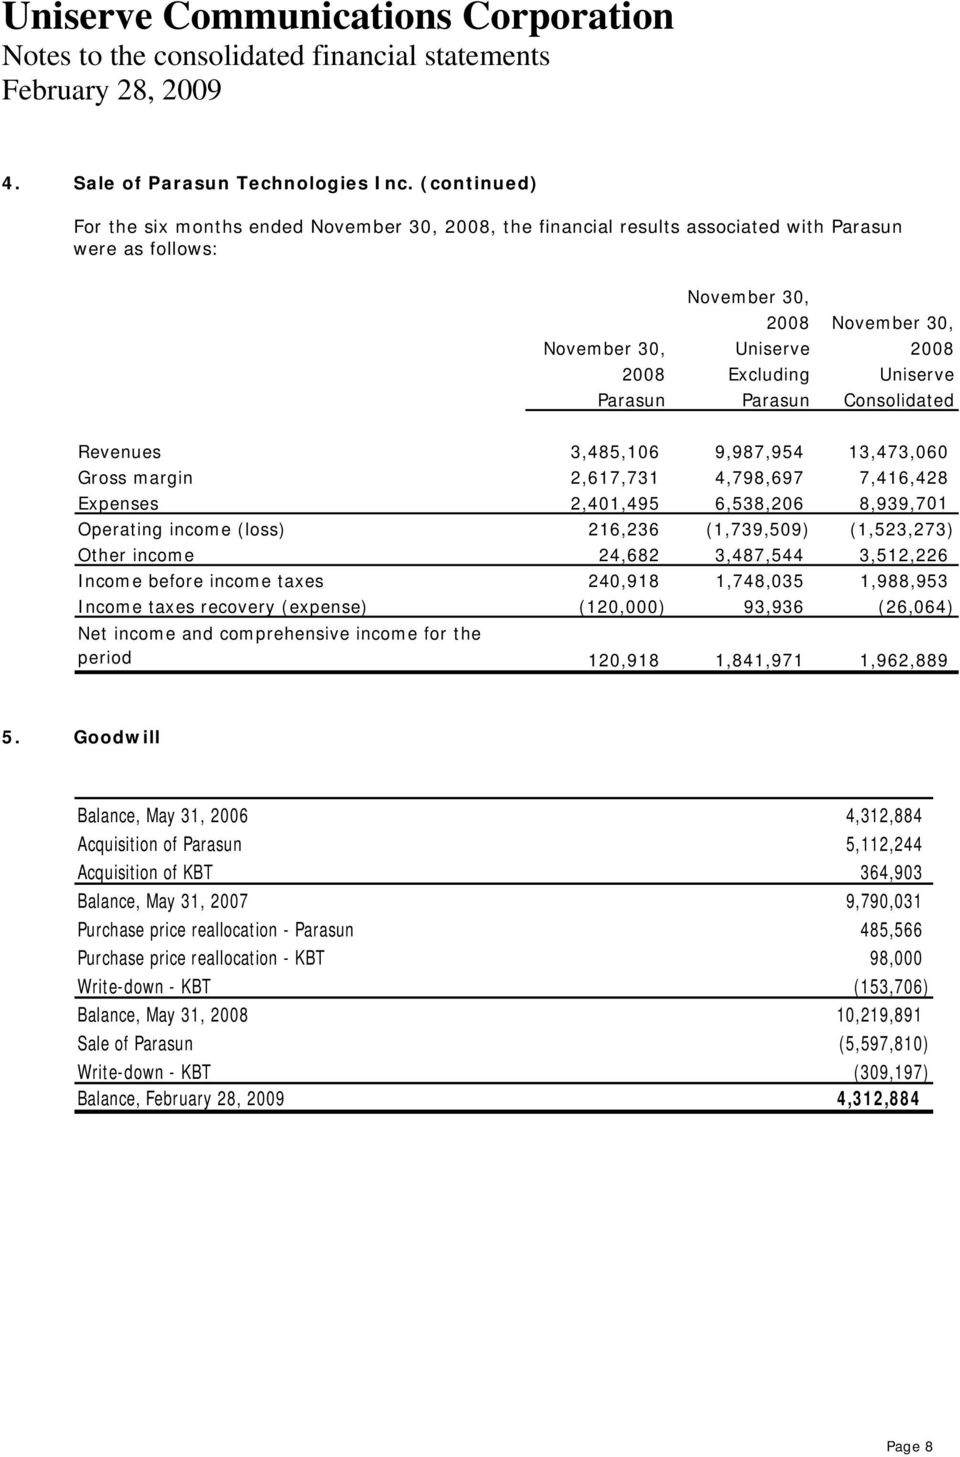 Uniserve Parasun Parasun Consolidated Revenues Gross margin 3,485,106 2,617,731 9,987,954 4,798,697 13,473,060 7,416,428 Expenses Operating income (loss) 2,401,495 216,236 6,538,206 (1,739,509)